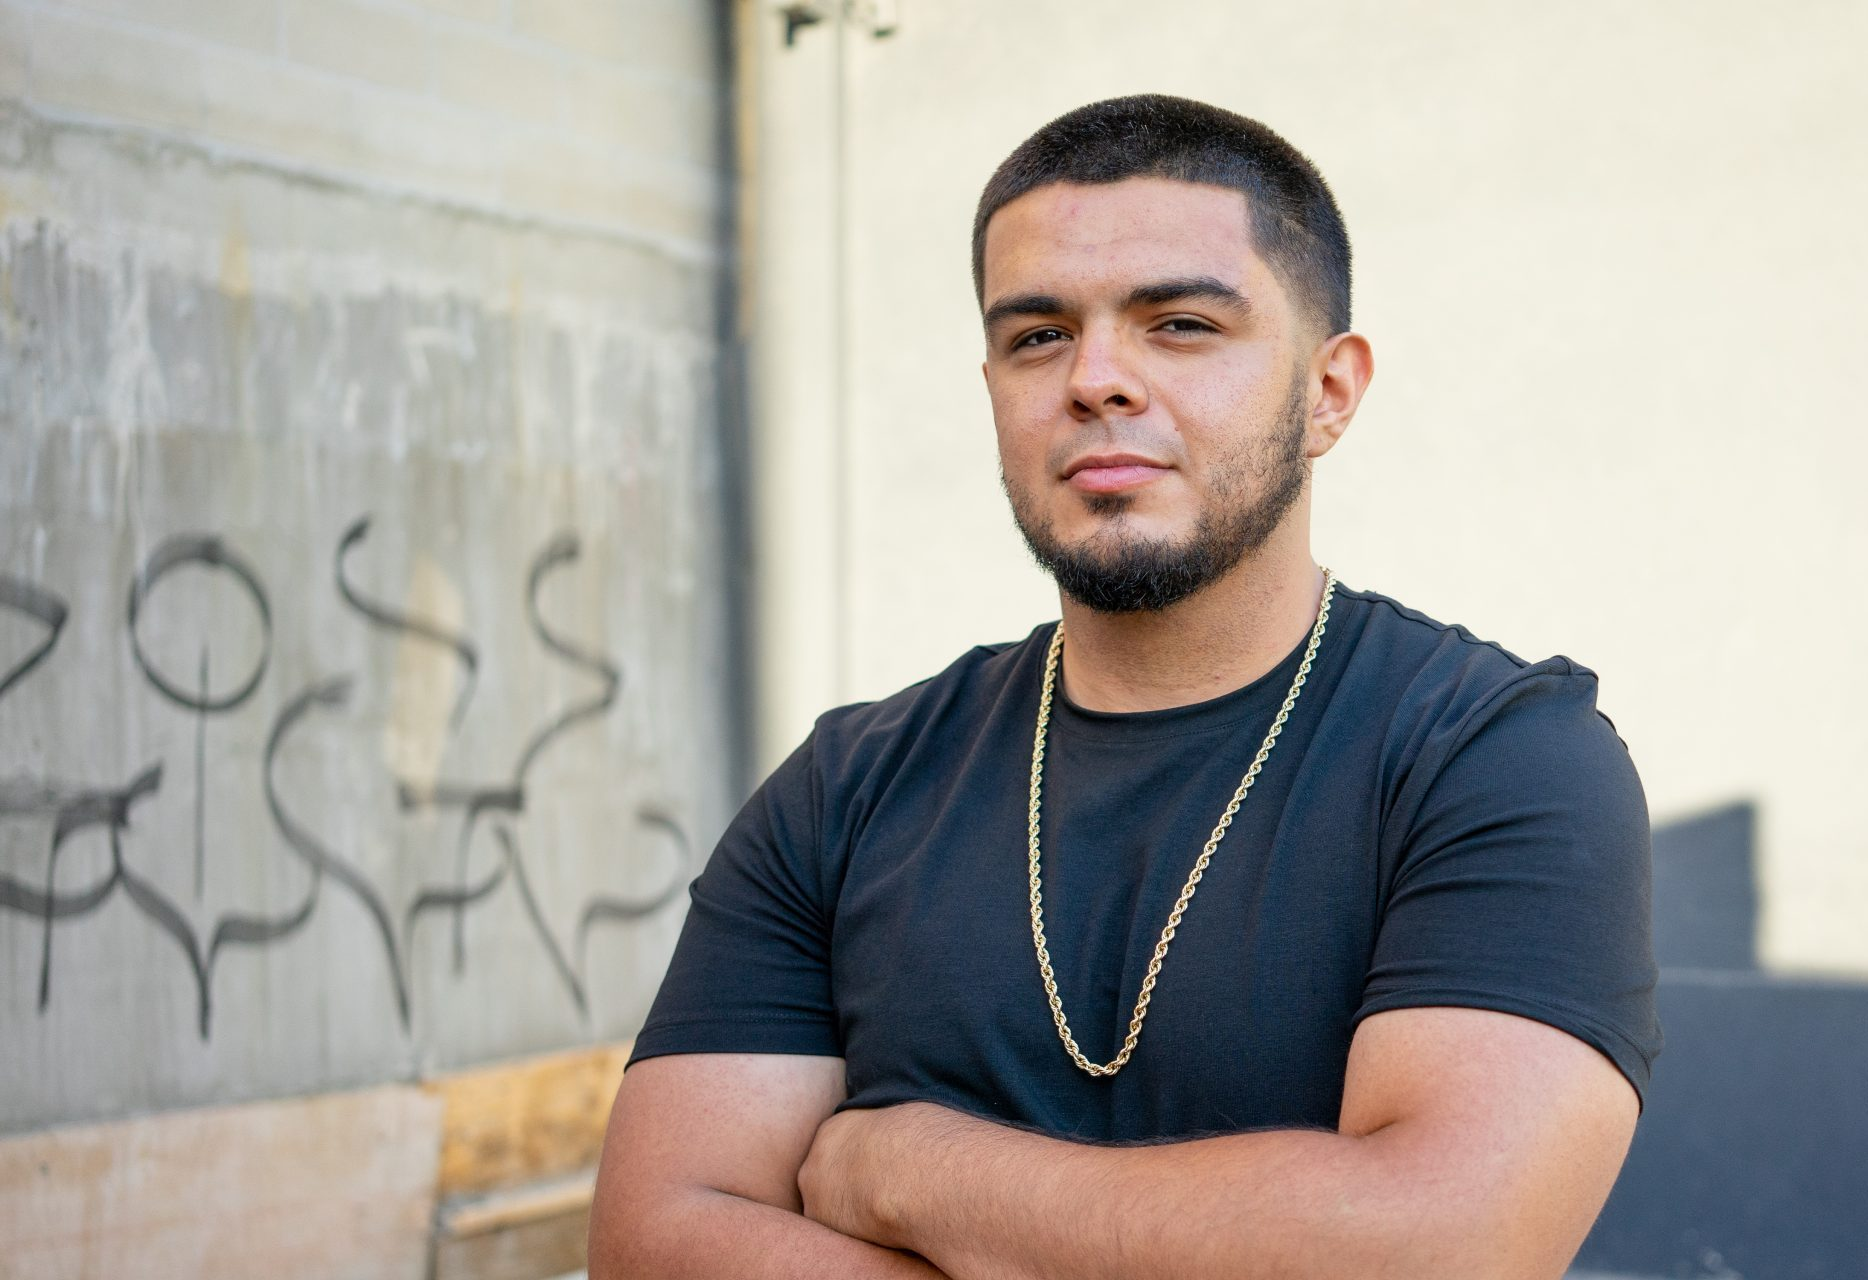 The Big Picture: Sergio, a young latino man with his arms crossed, looks at the camera